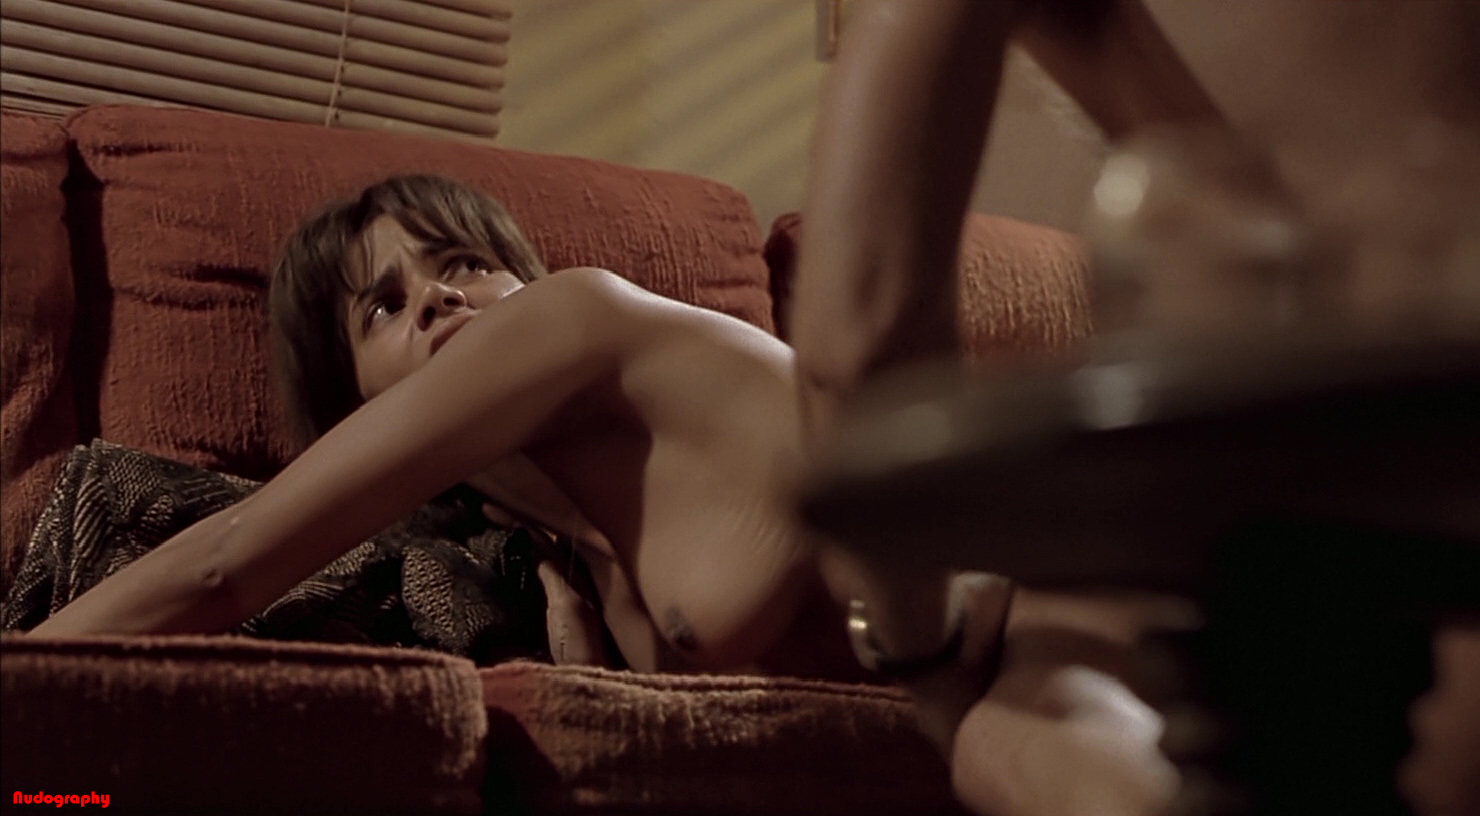 Halle Berry Nude: The Topless Superhero Breakcom